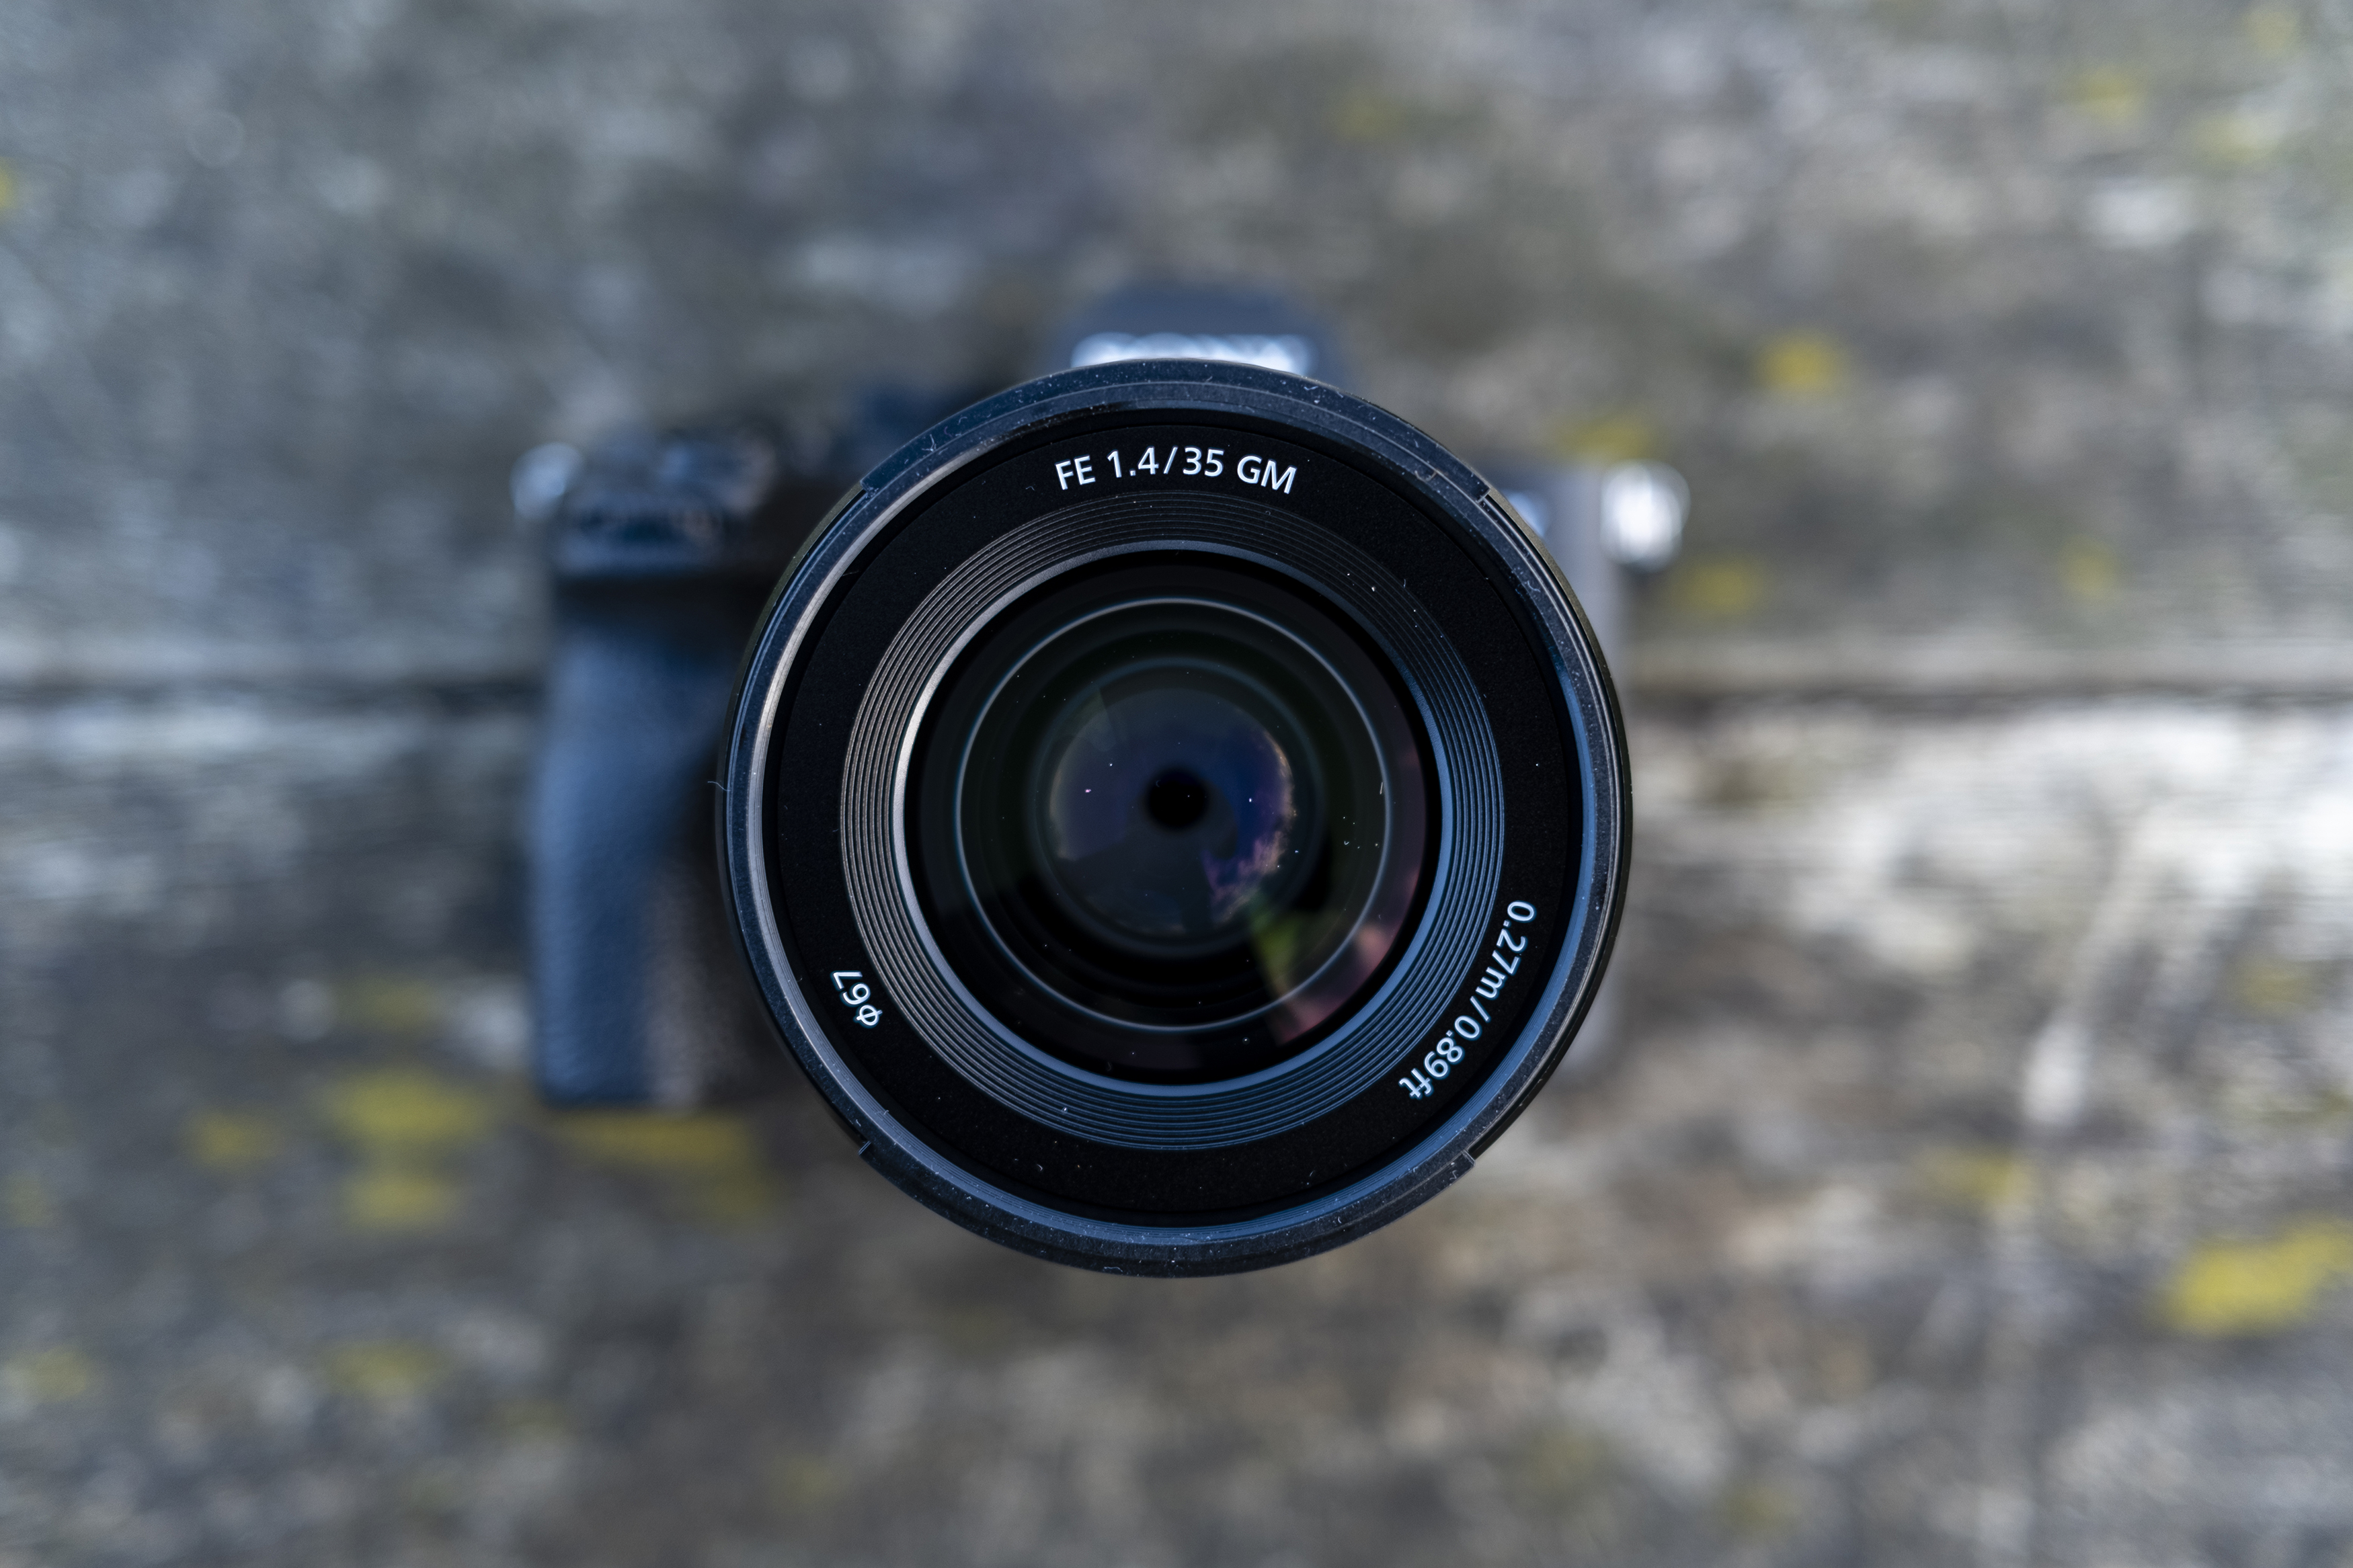 Sony camera fans get impressive new FE 35mm f/1.4 GM lens – read our full review